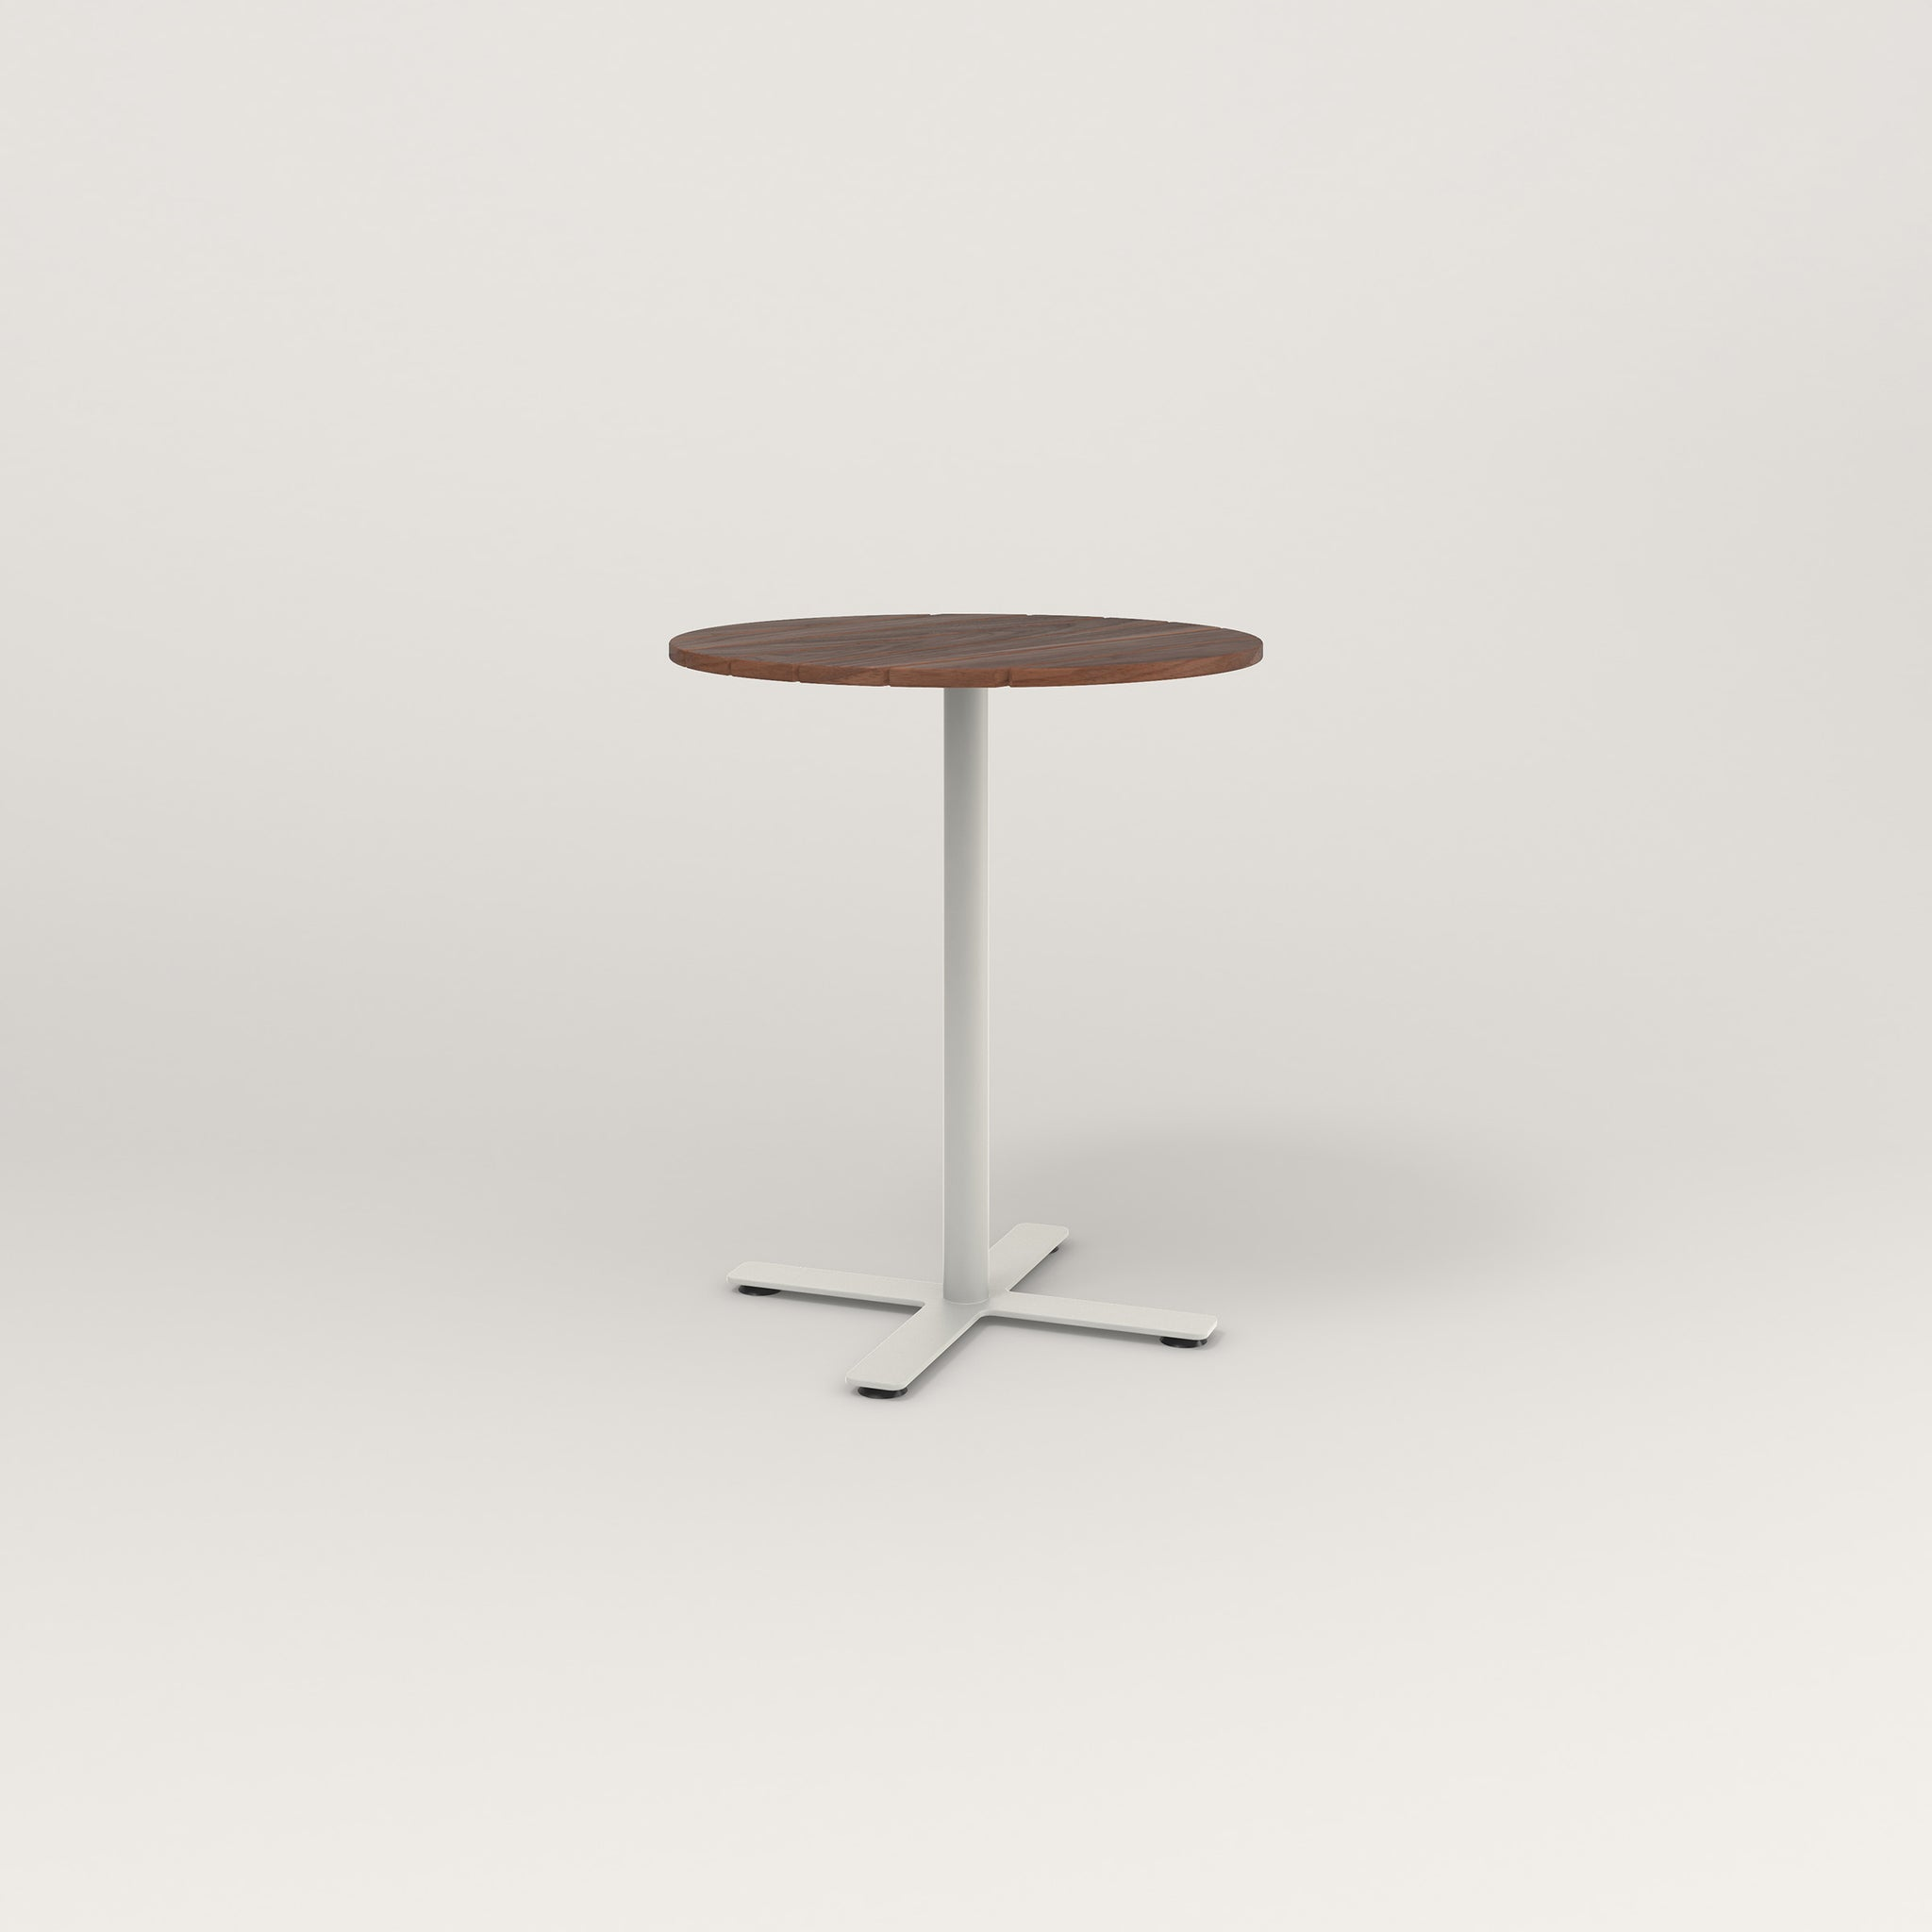 RAD Cafe Table, Round X Base in slatted wood and white powder coat.